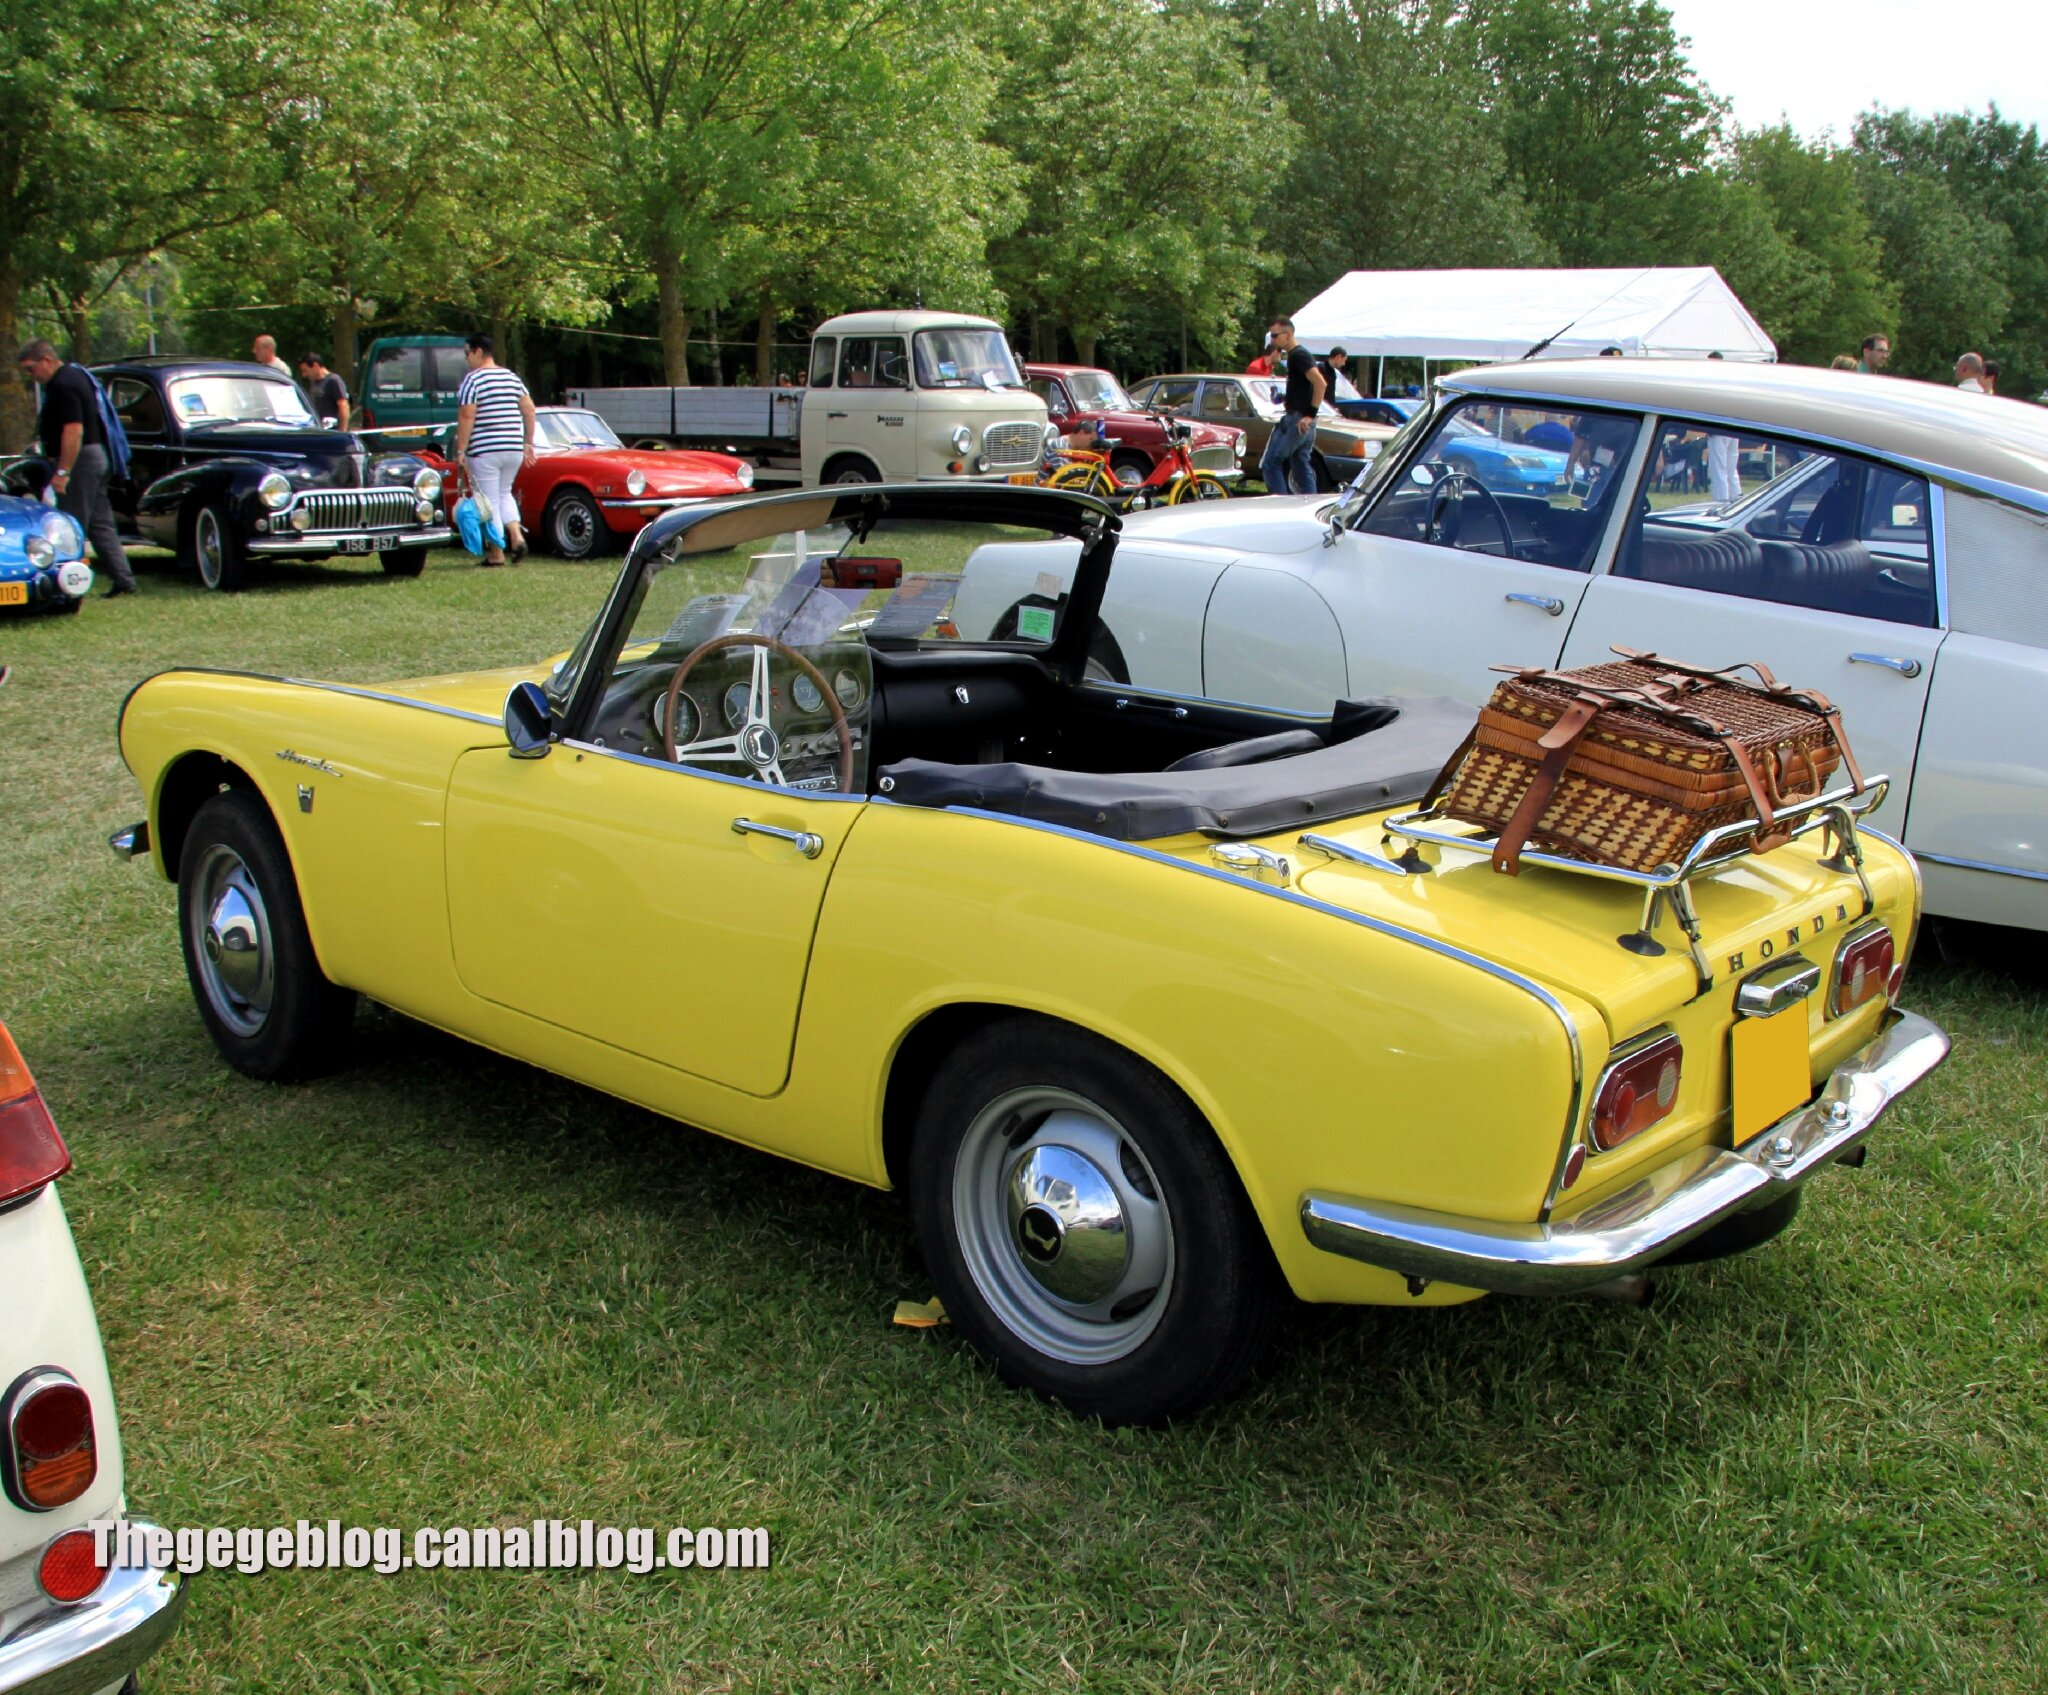 honda s800 cabriolet de 1967 retro meus auto madine 2012 the g g blog. Black Bedroom Furniture Sets. Home Design Ideas